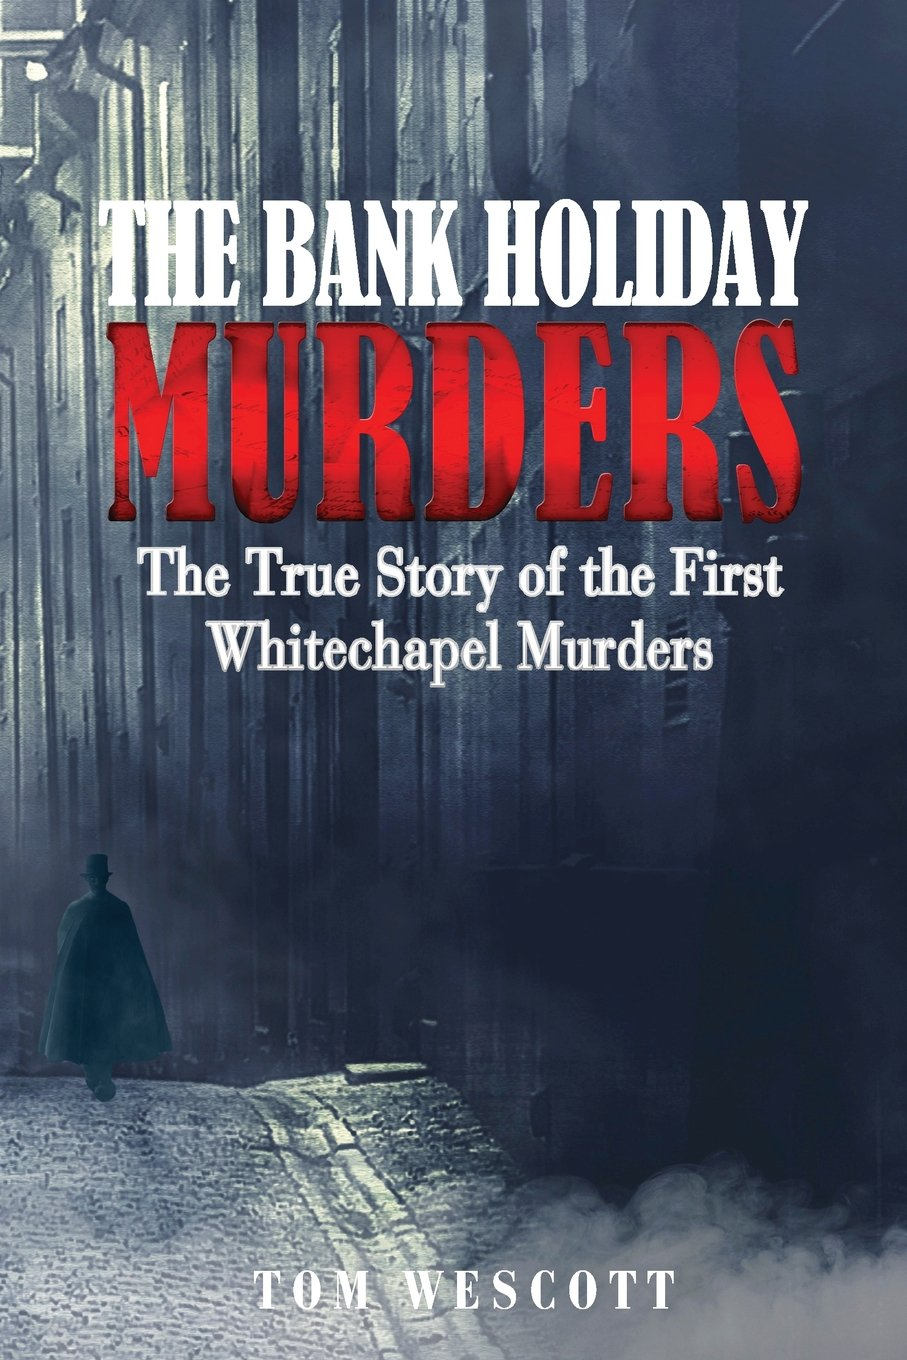 The Bank Holiday Murders: The True Story of the First Whitechapel Murders Cover